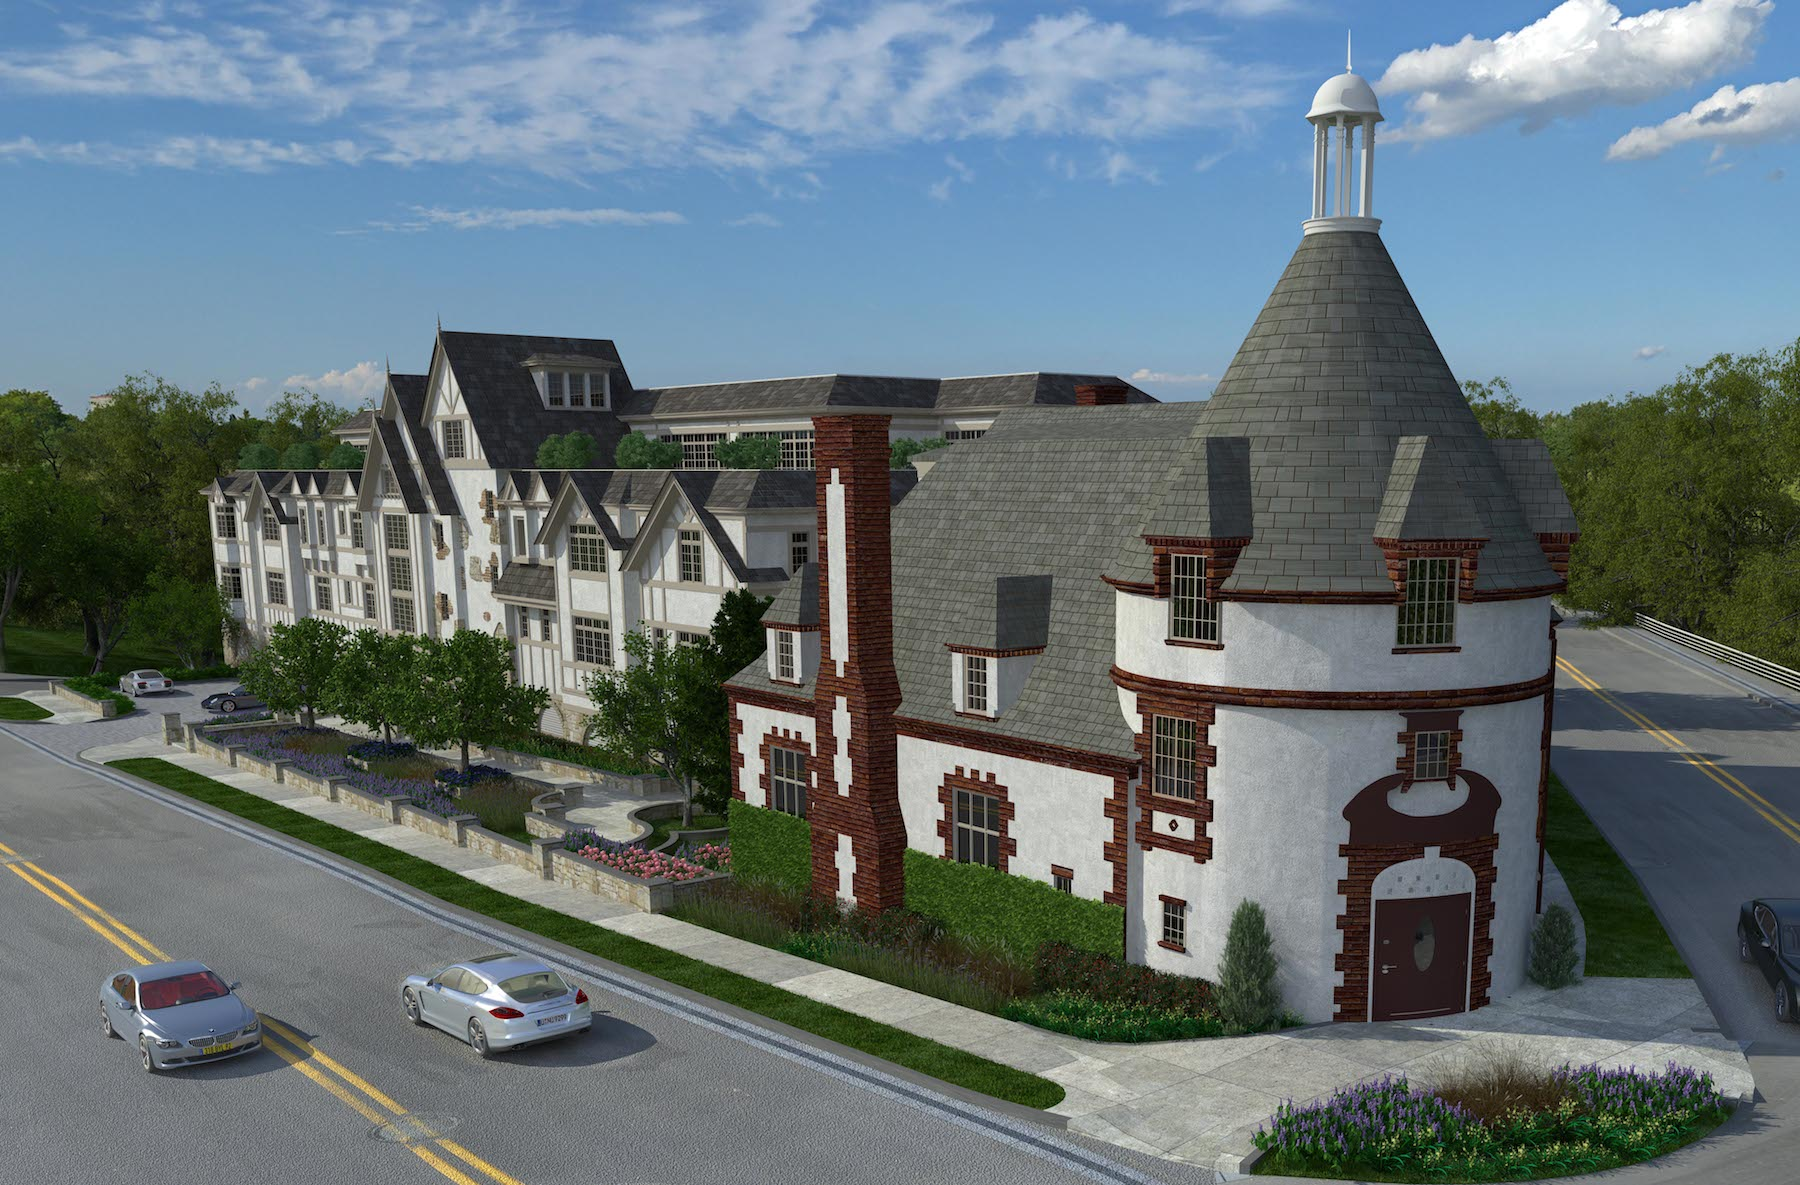 Co-op for Sale at The Heathcote 2-4 Weaver Street 7 Scarsdale, New York 10583 United States